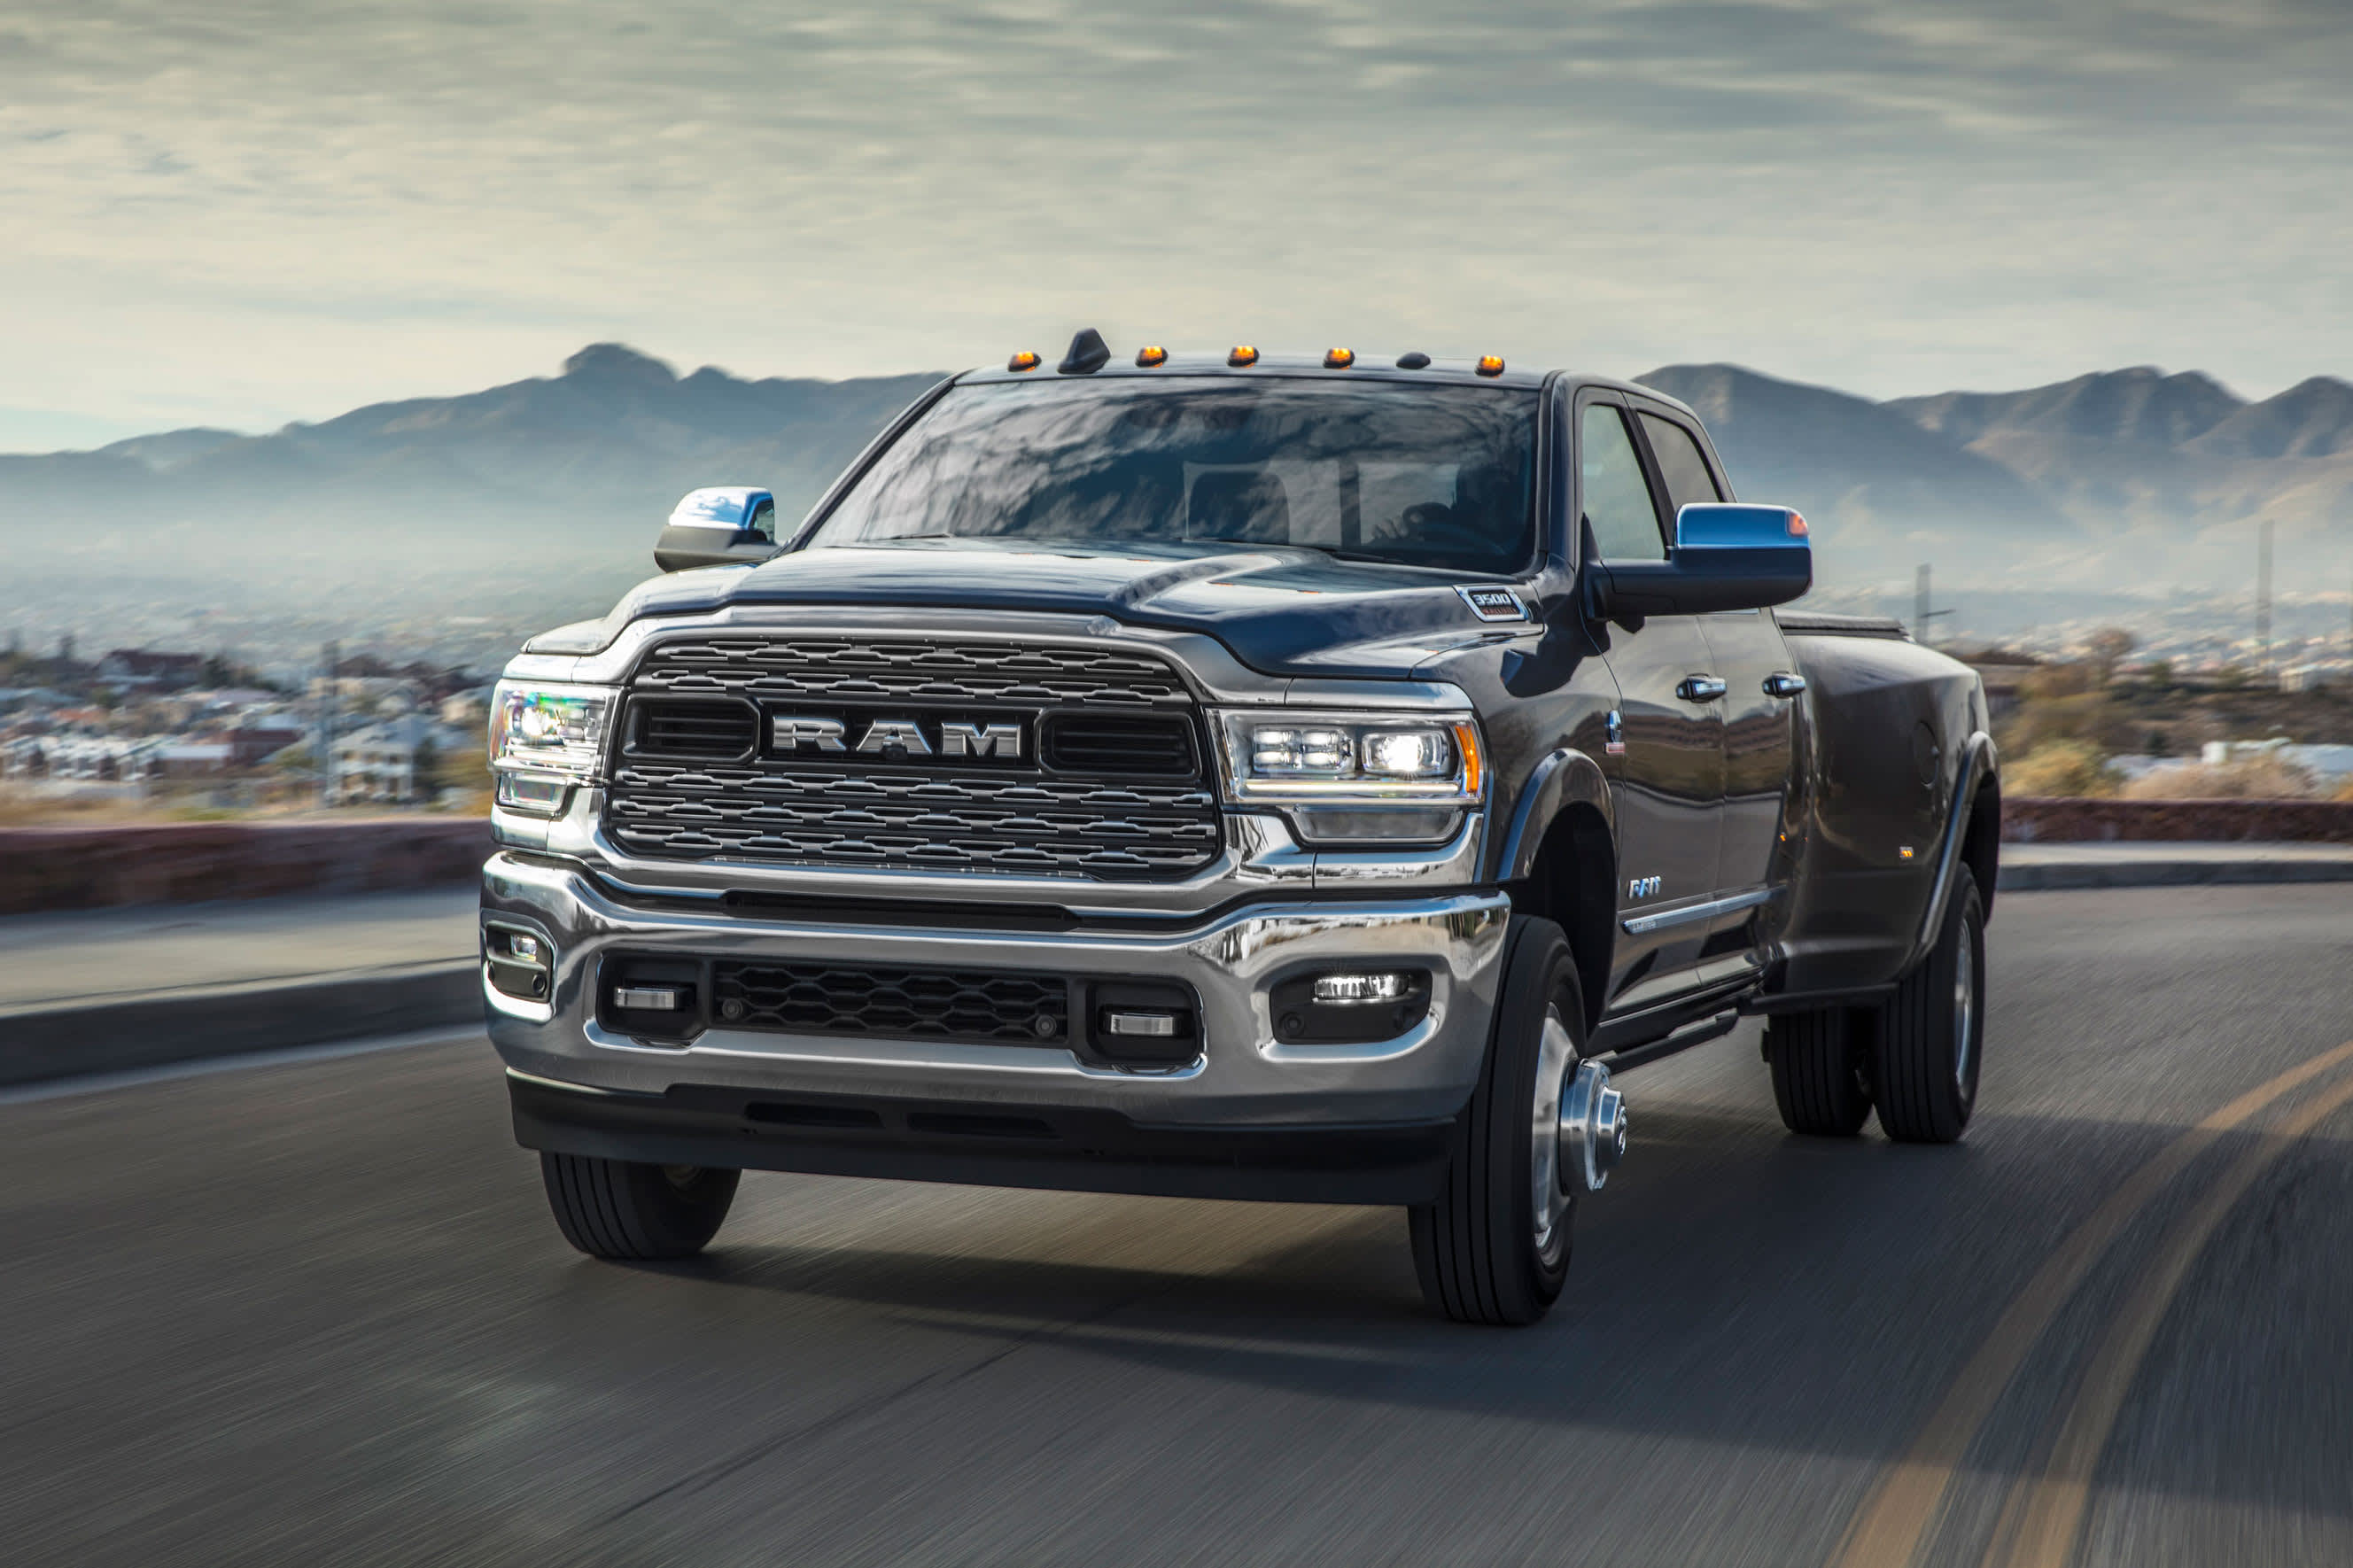 Ram Trucks wants a bigger piece of heavy-duty trucks